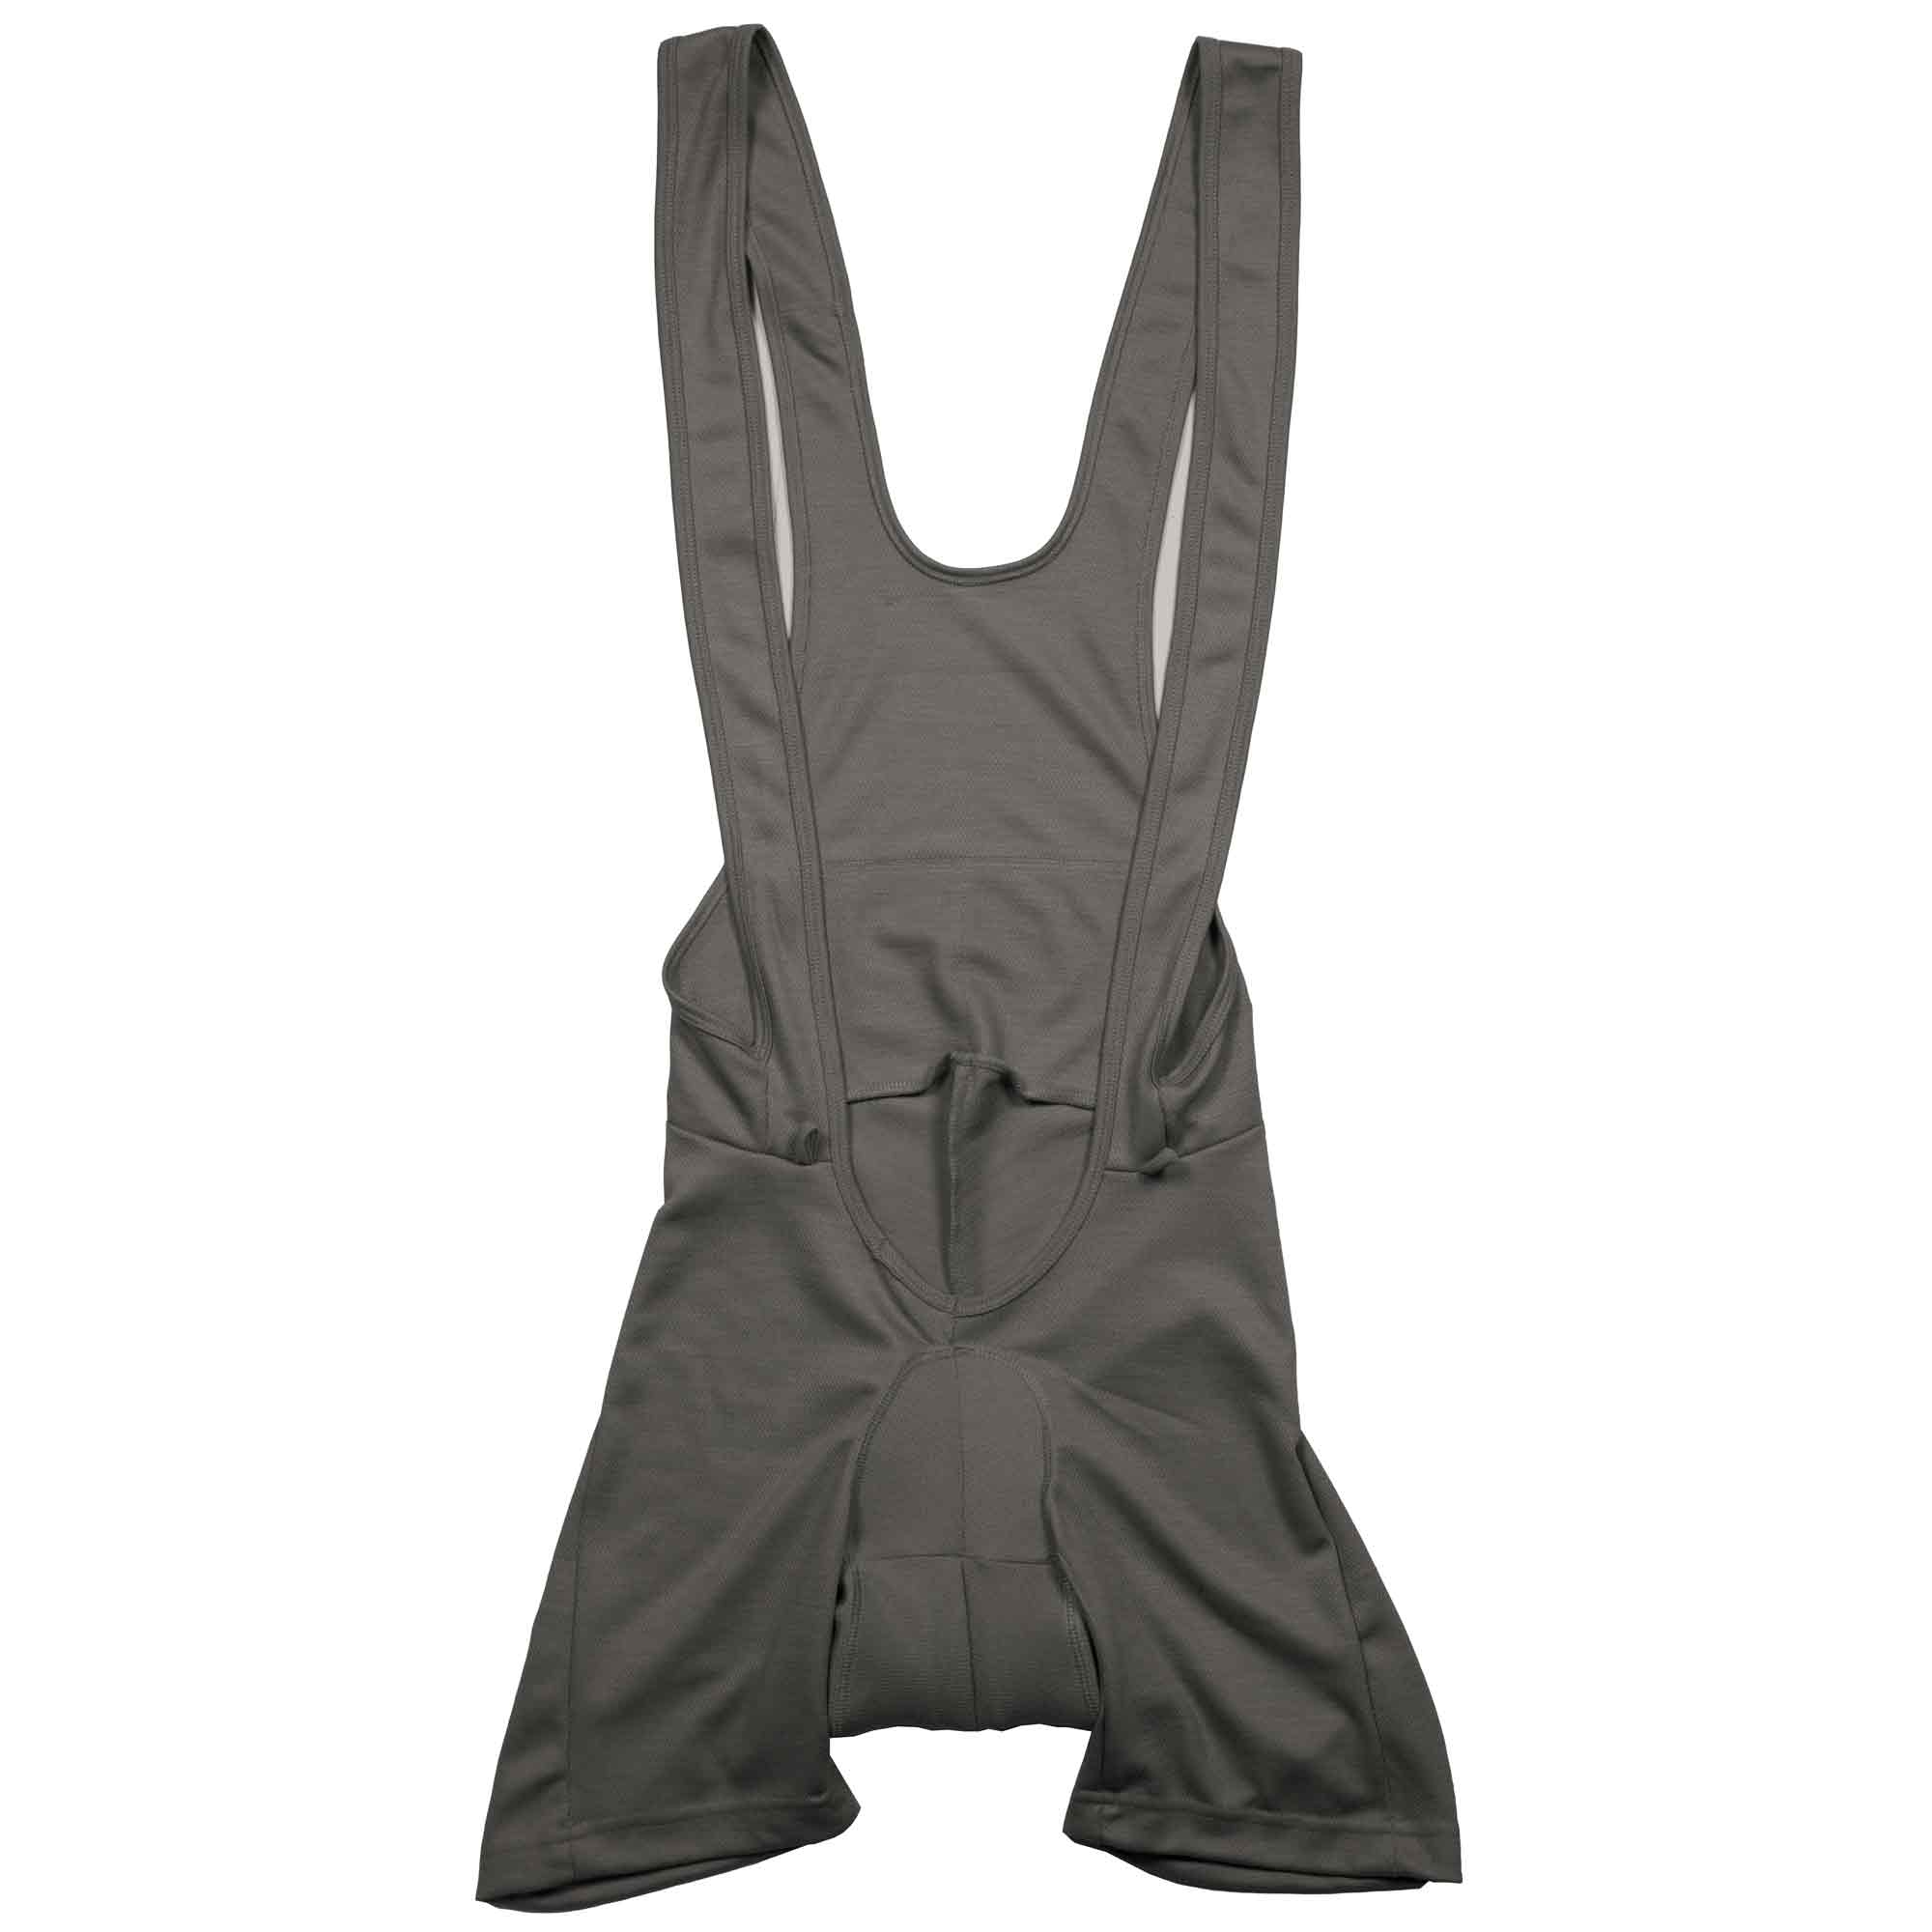 Conation Collective Mountain Bike Bib Shorts